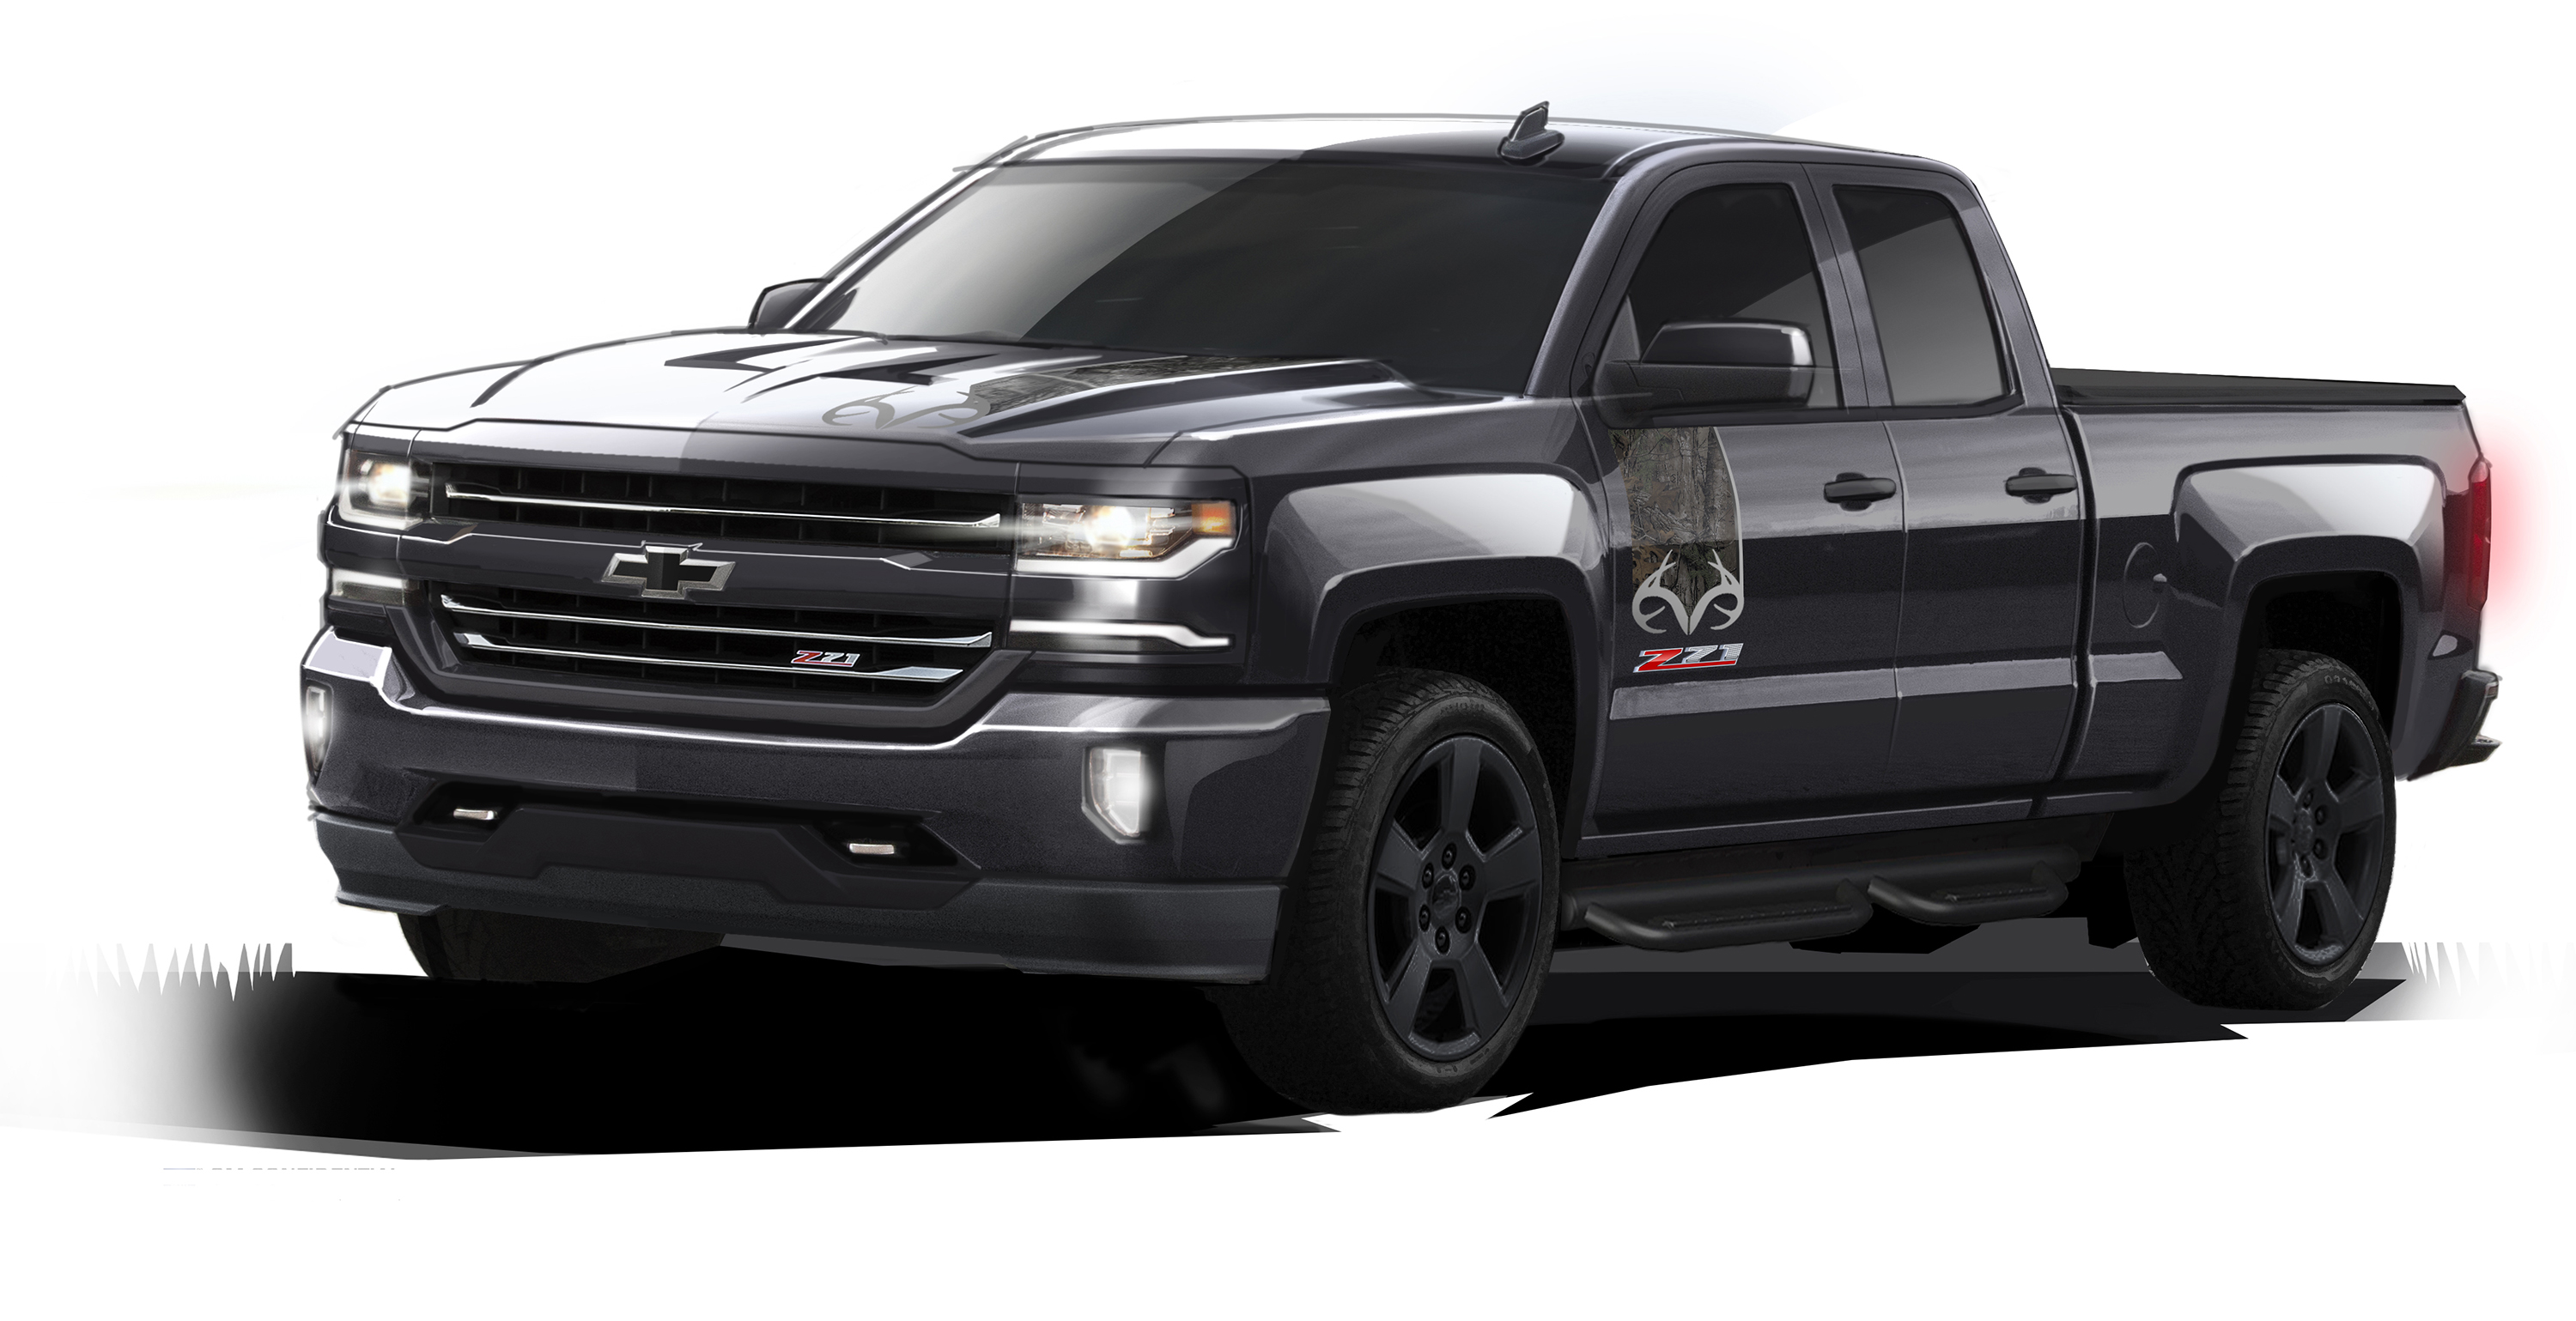 Chevrolet Introduces Silverado Realtree Edition